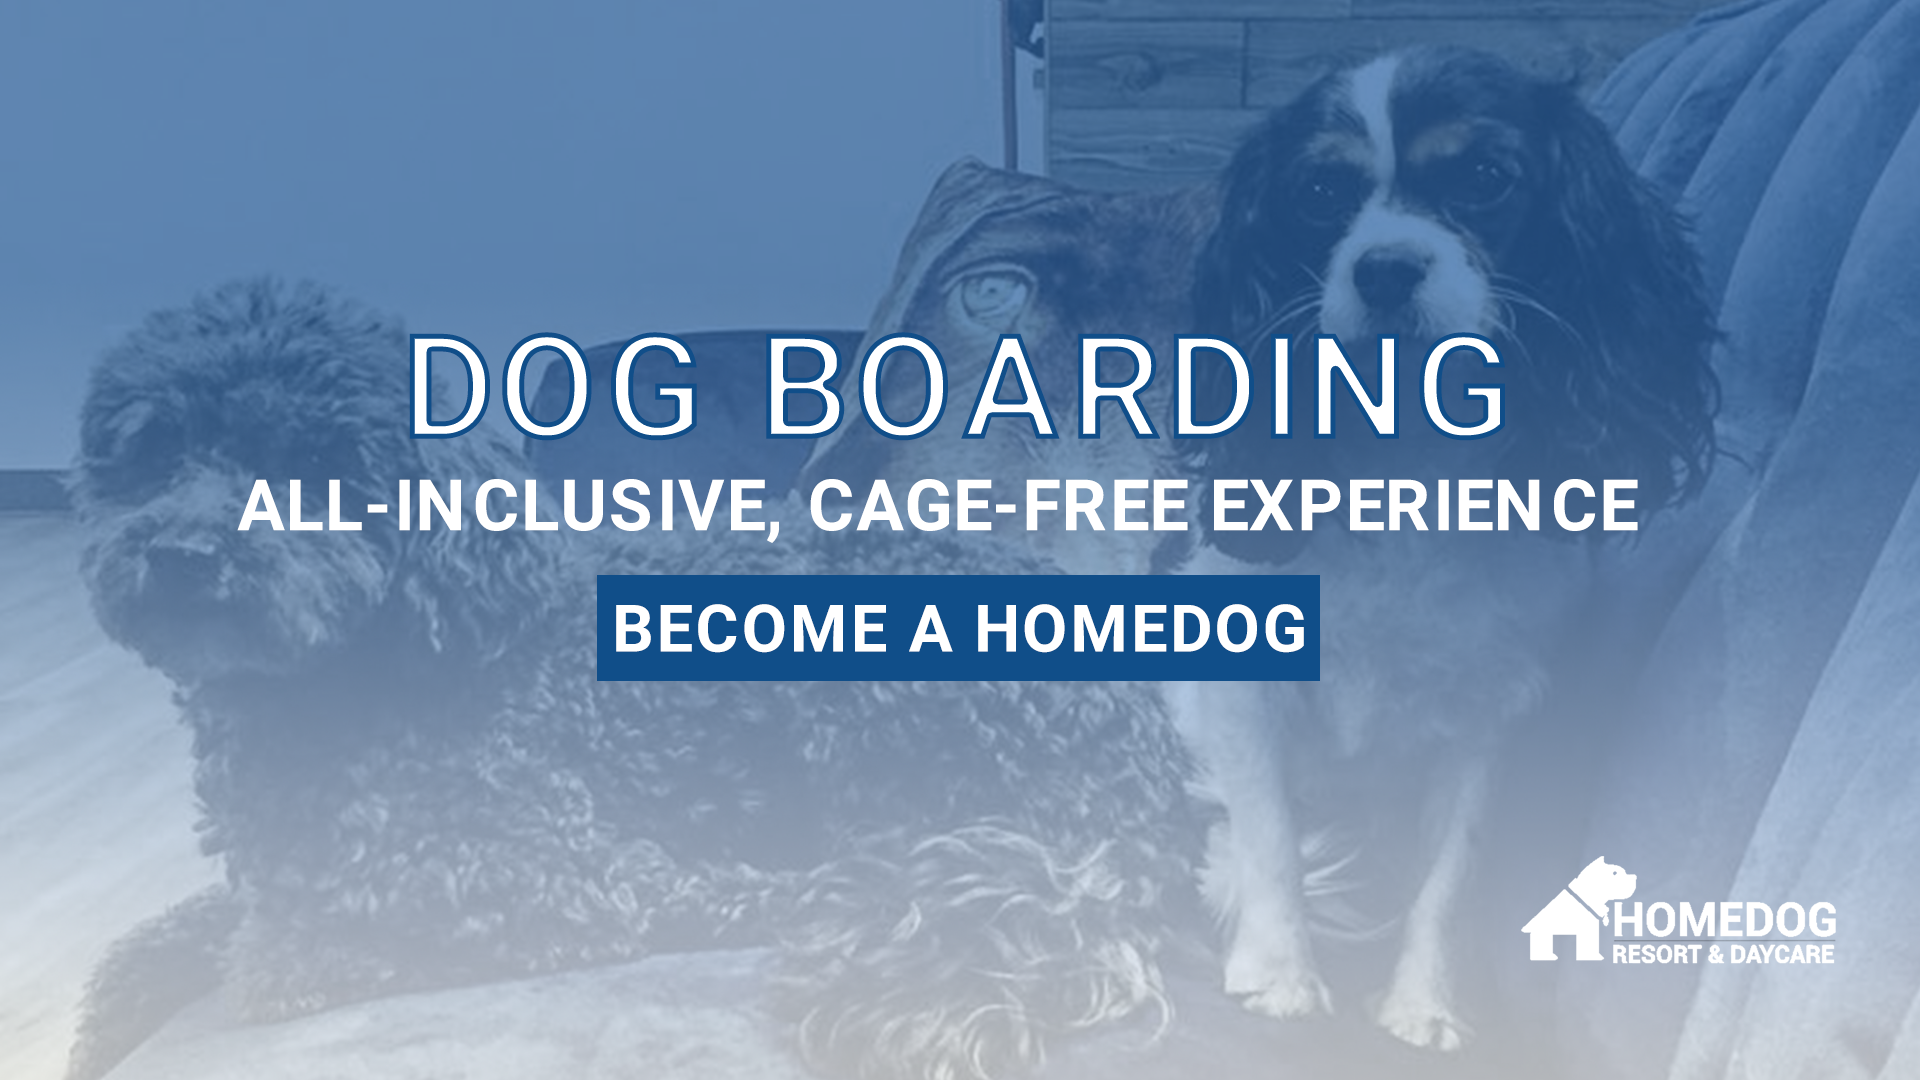 All-Inclusive, Cage-Free Dog Boarding at Homedog Resort & Daycare in downtown Columbus, Ohio